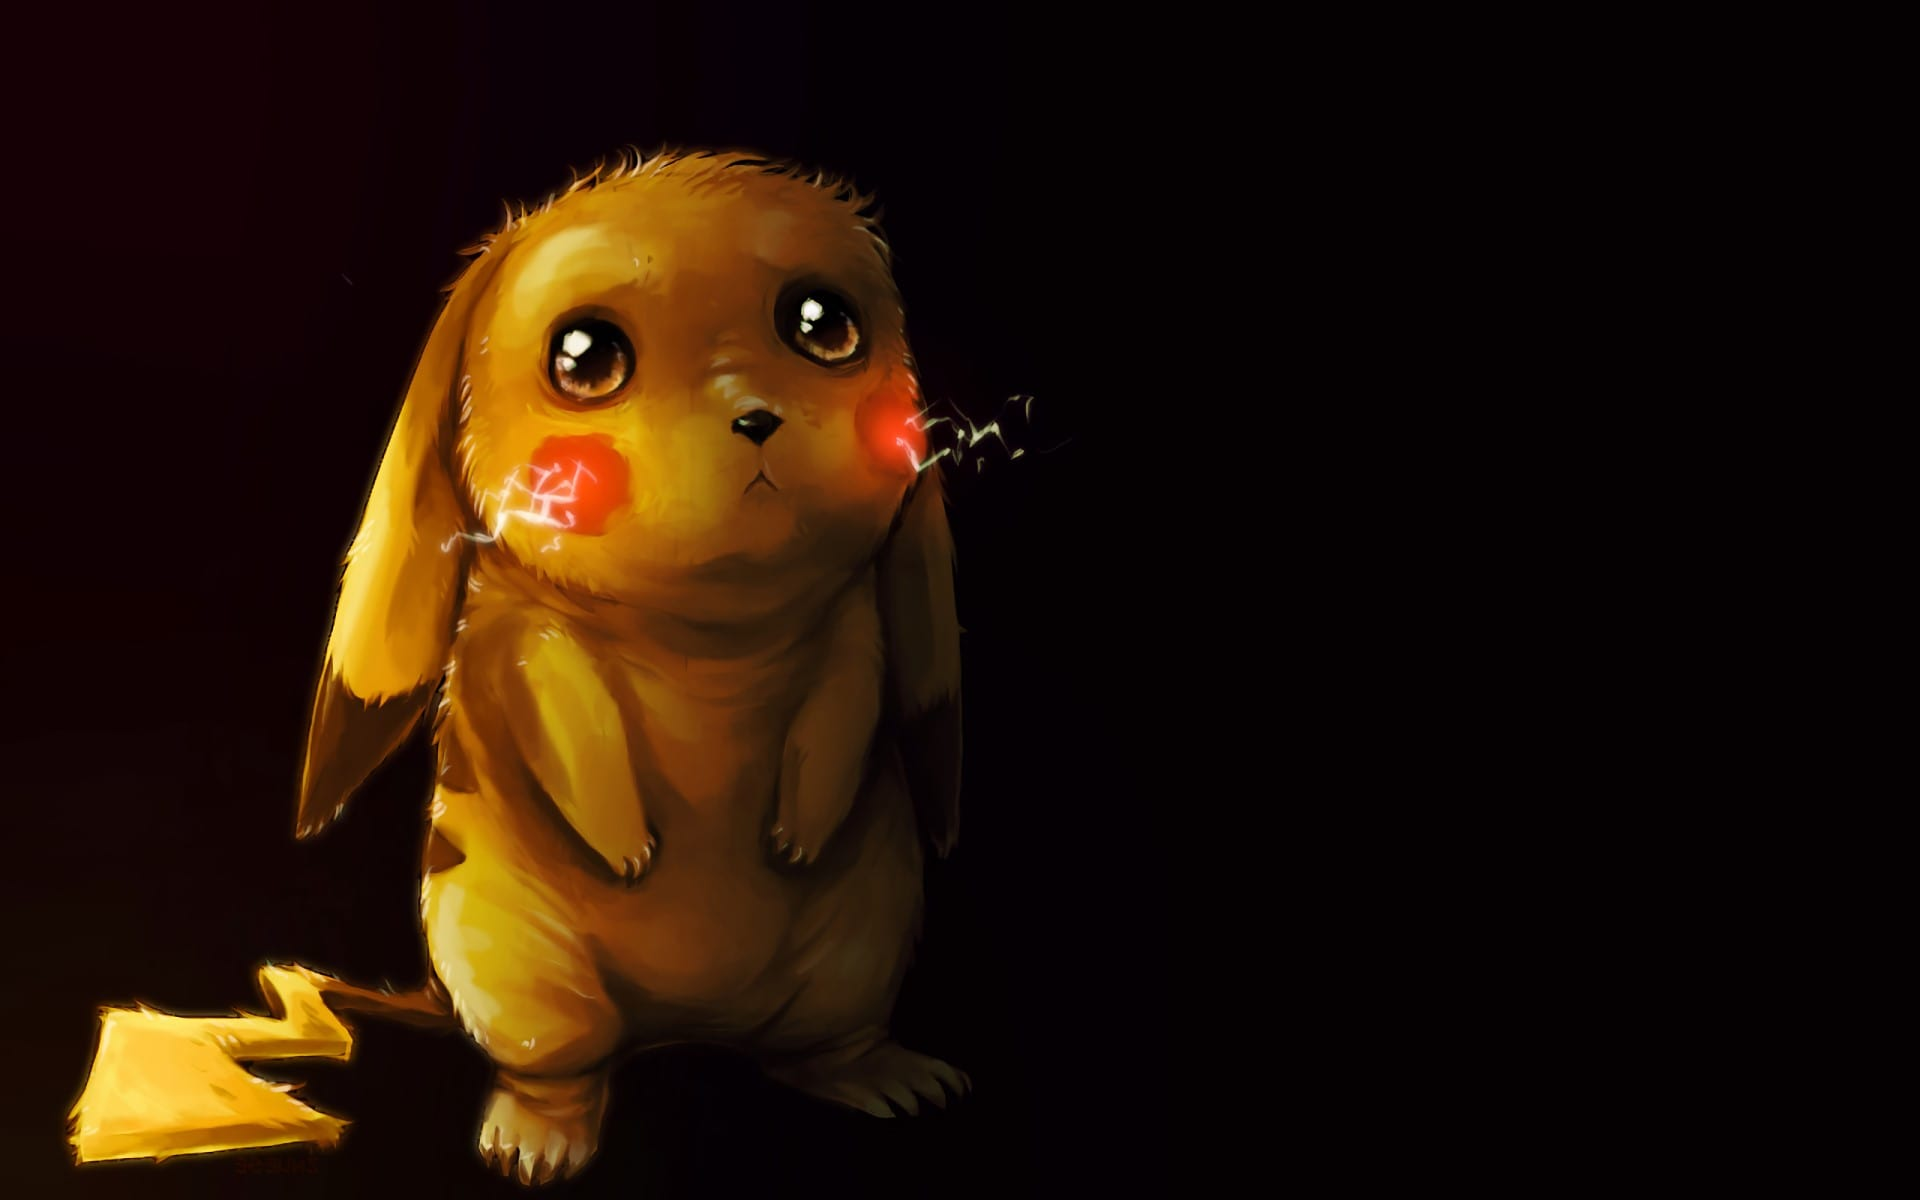 Sad Pikachu HD Wallpaper